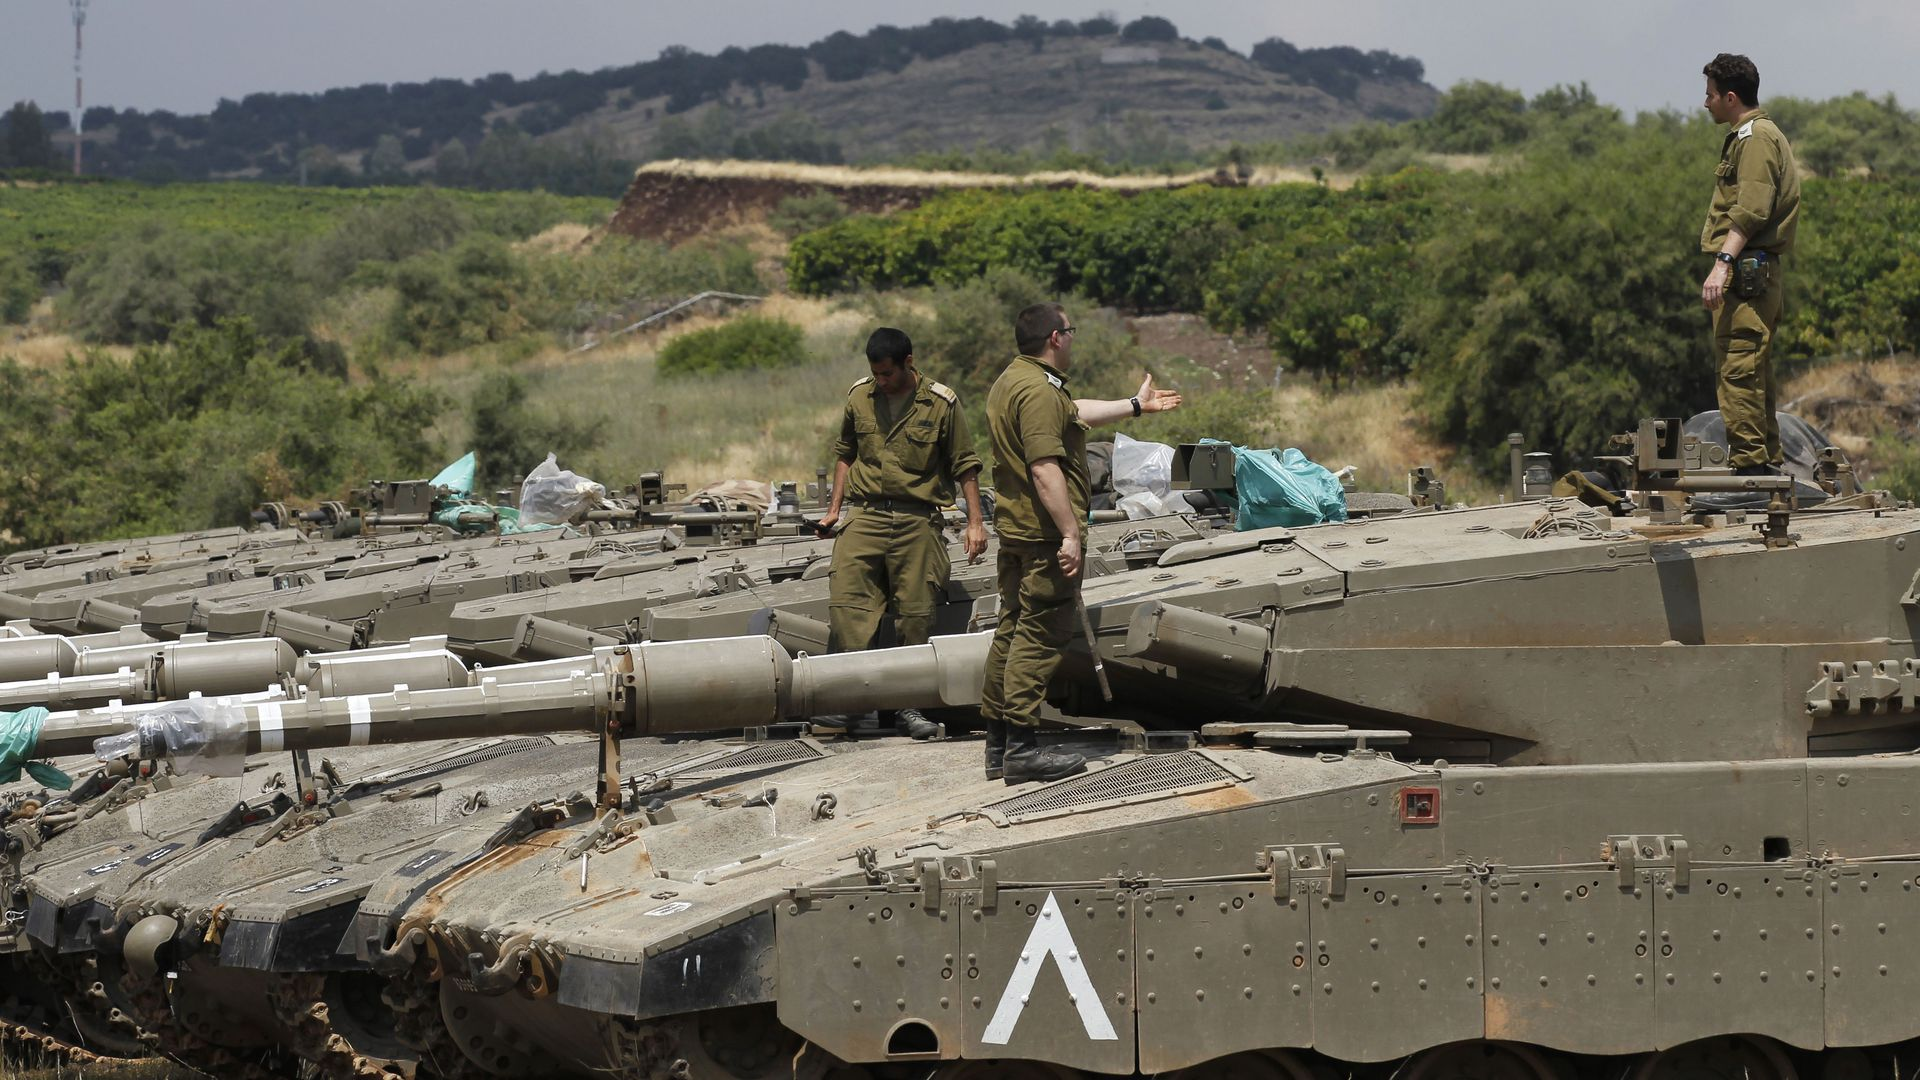 sraeli soldiers stands on top of Merkava Mark IV tanks as troops take position near the Syrian border in the Israeli-annexed Golan Heights on May 9, 2018